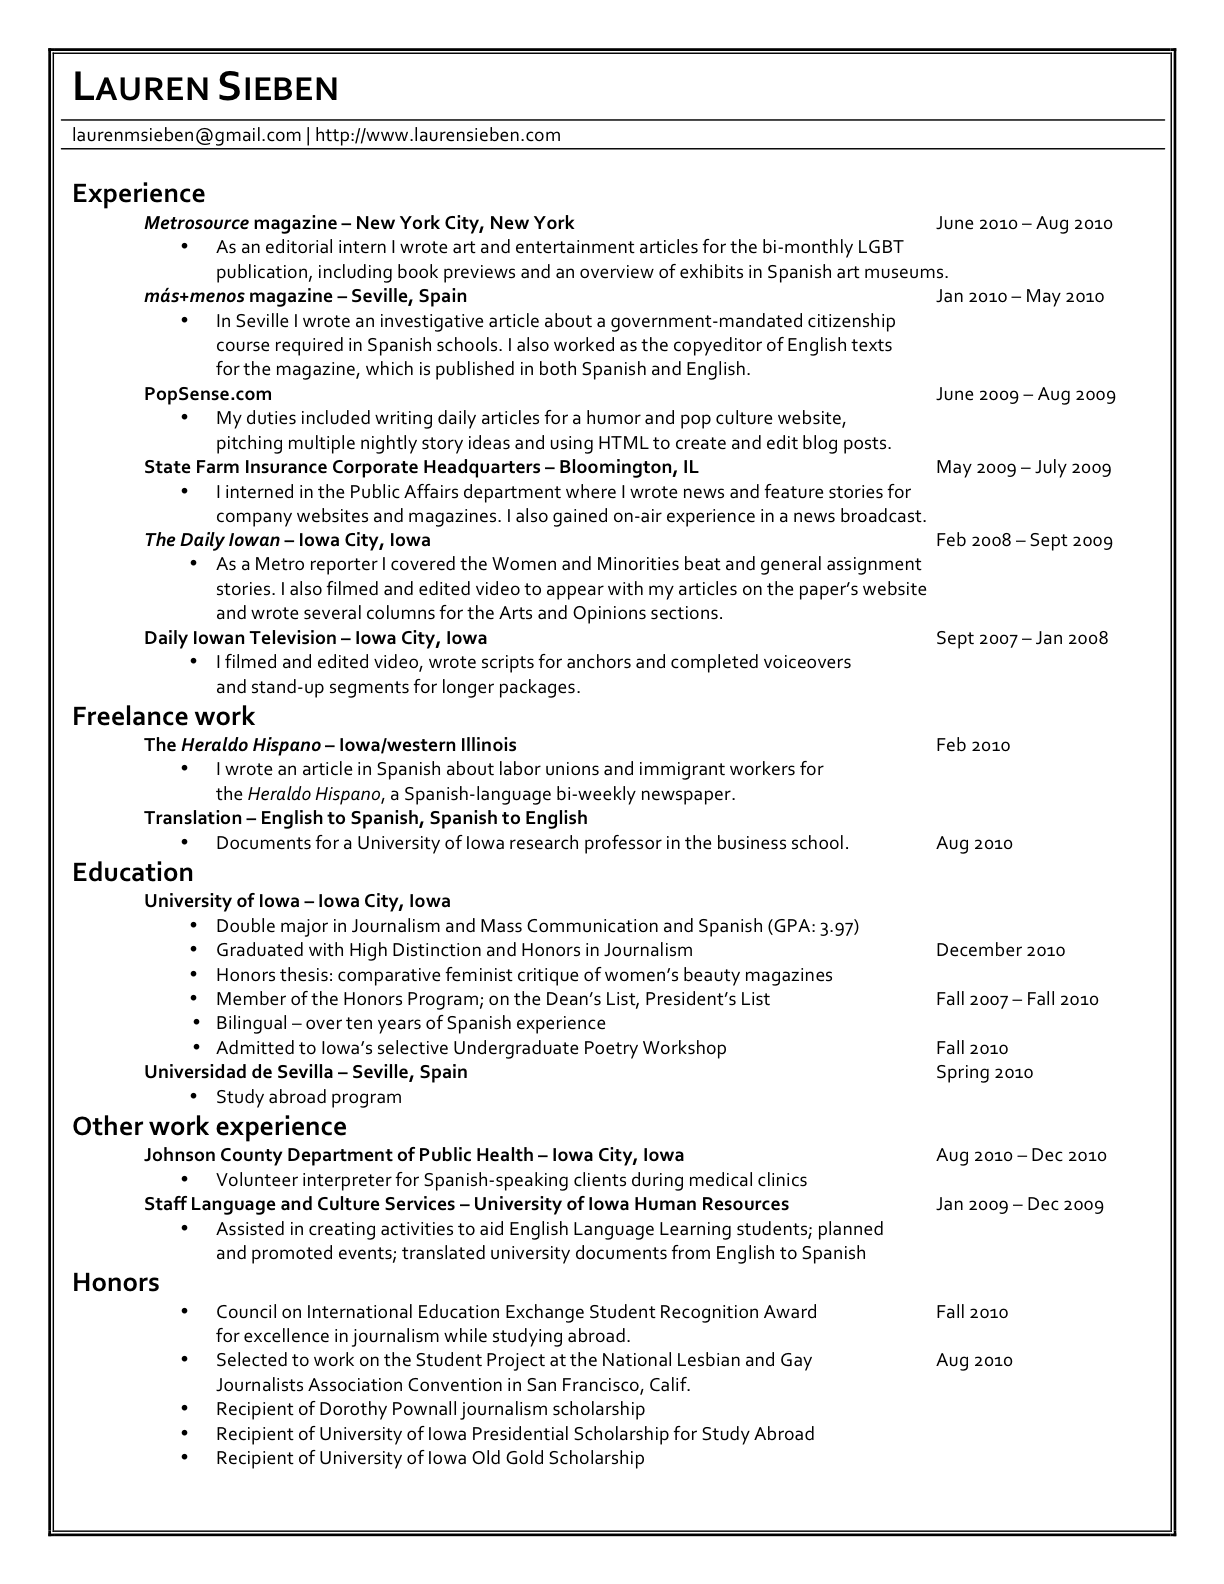 laurensieben website resume – Lauren Sieben